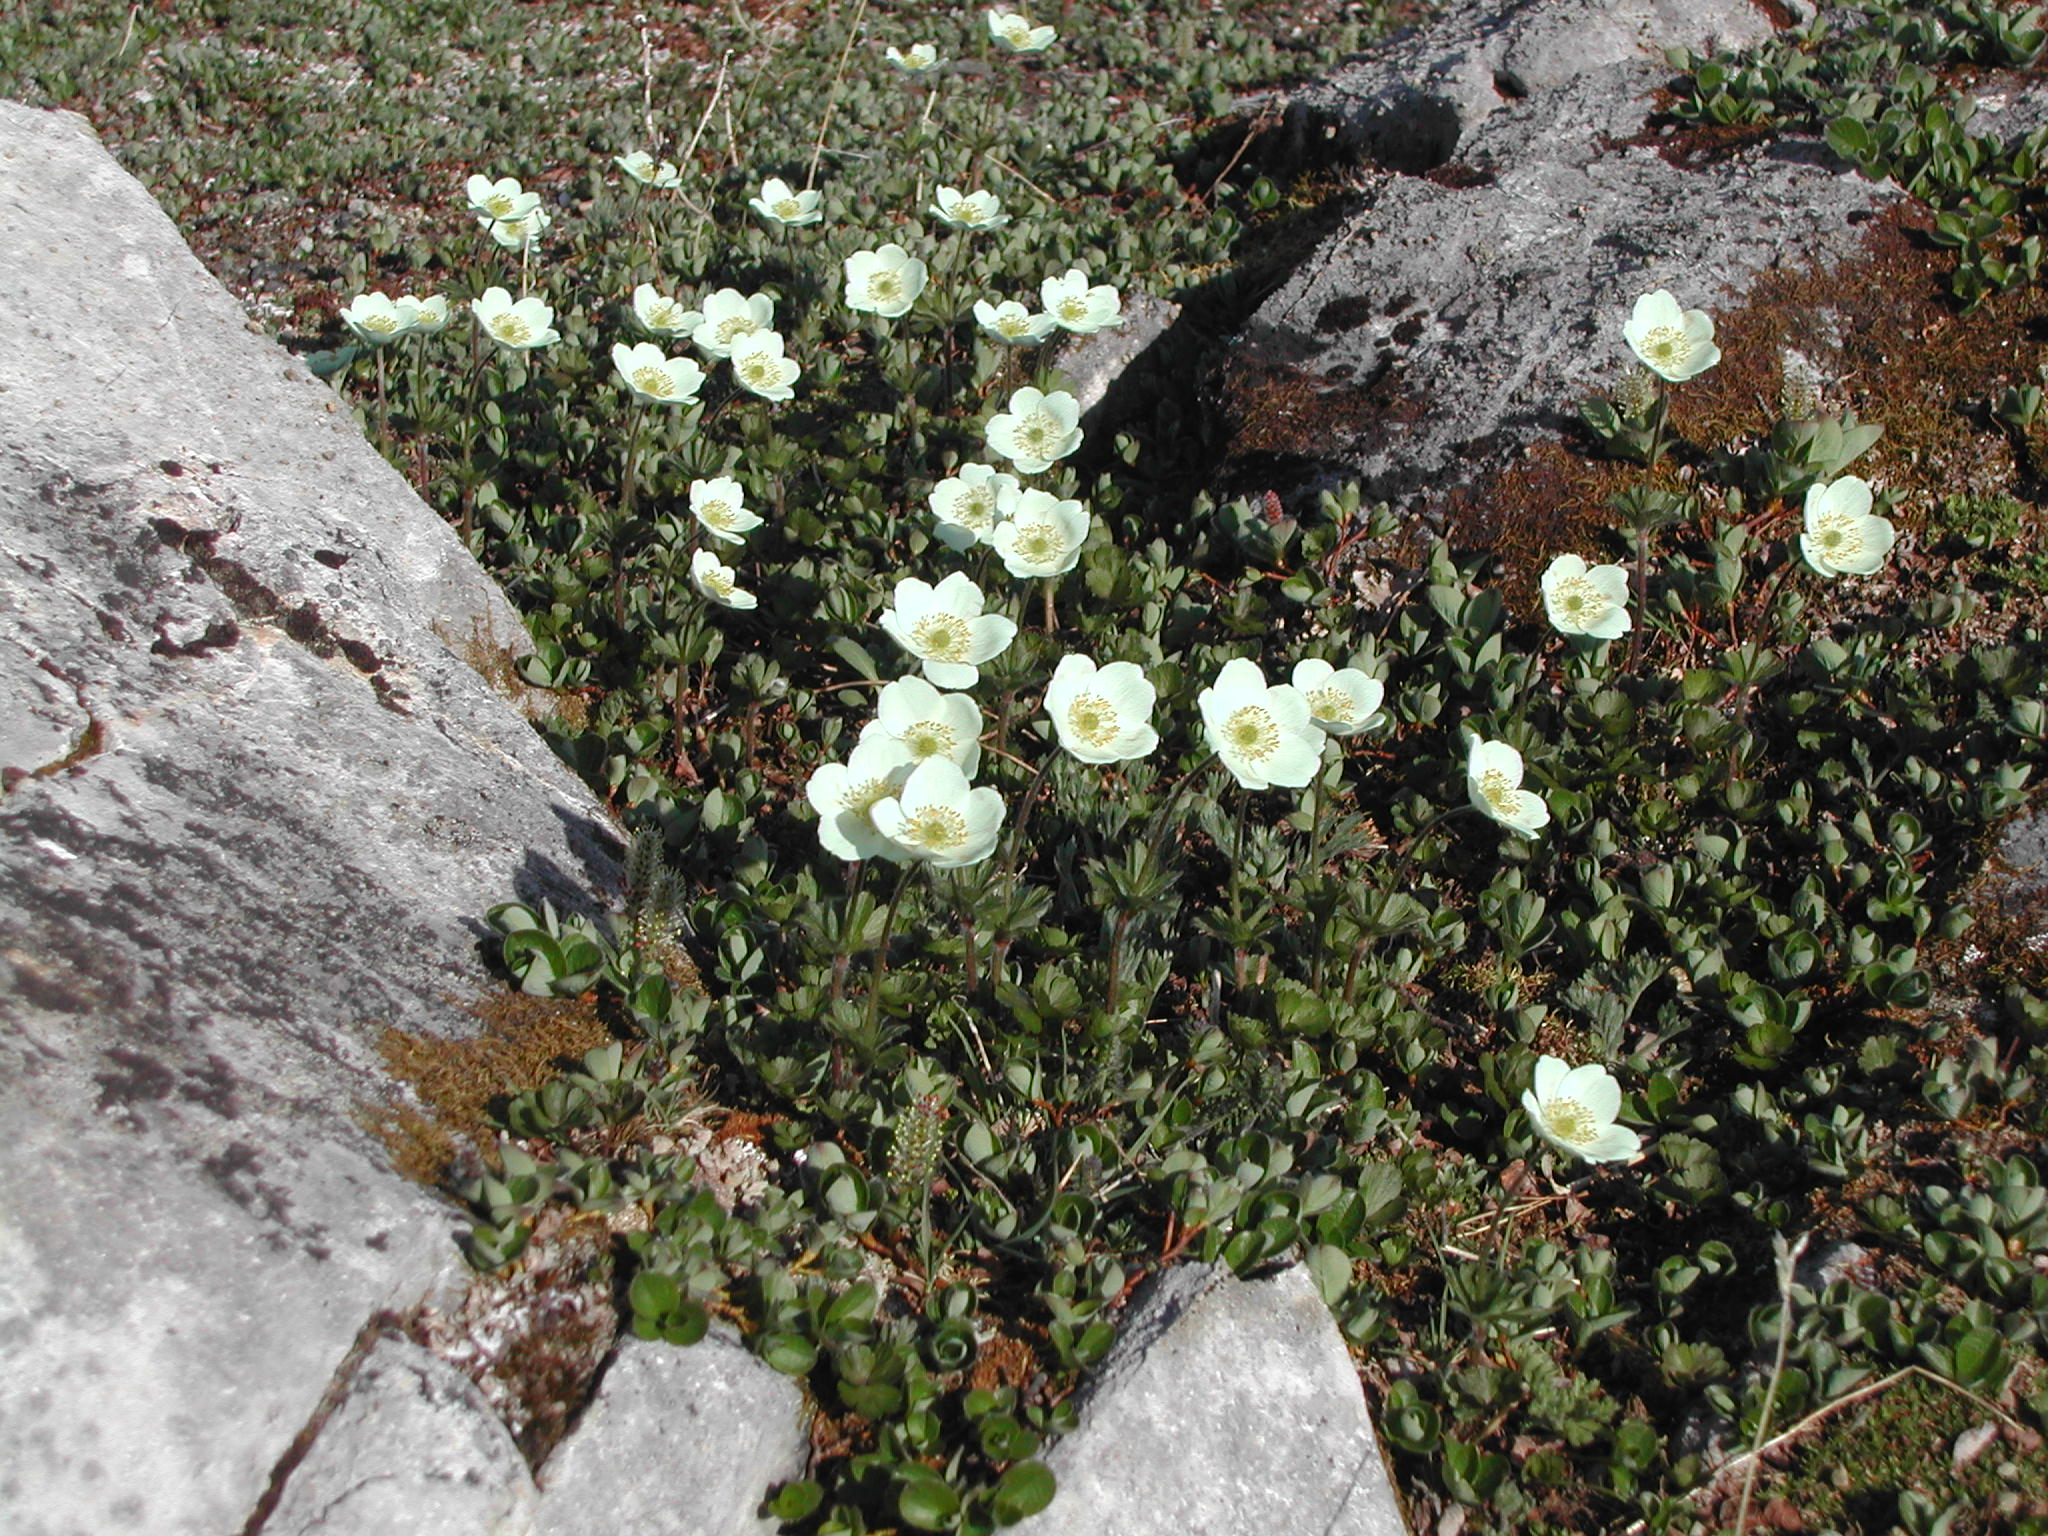 Wildflowers in July in the alpine tundra